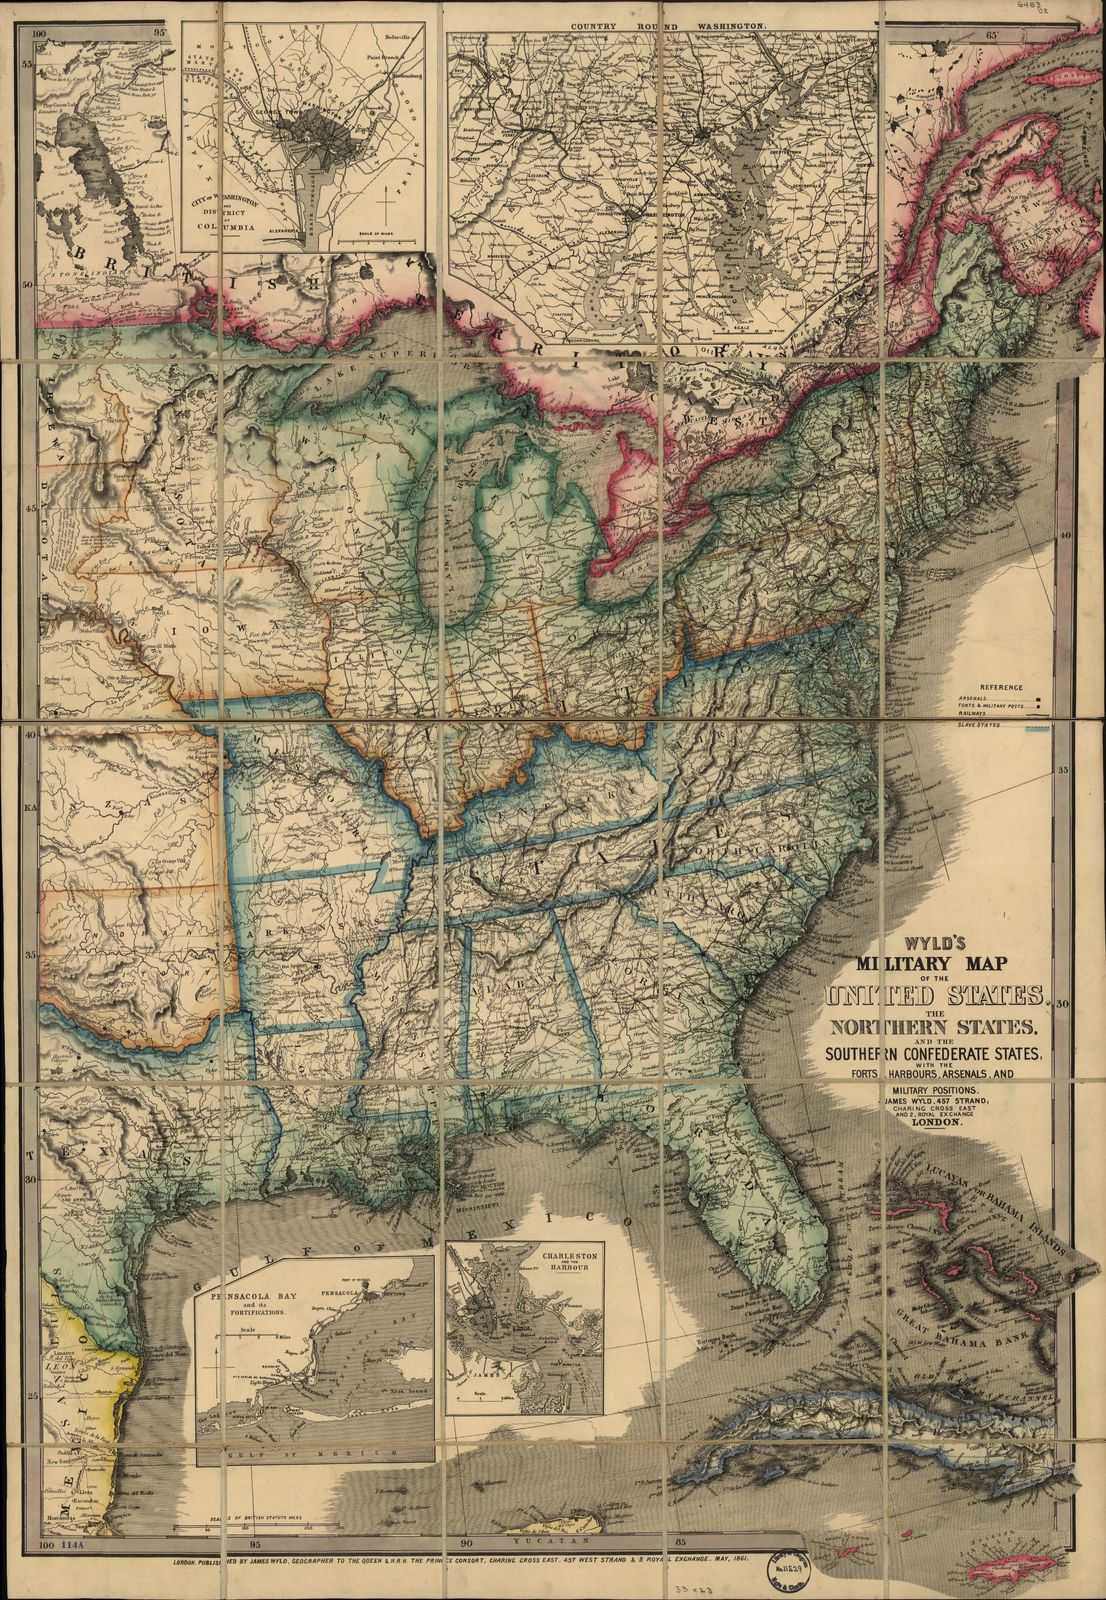 Wyld's military map of the United States, the northern states, and the southern confederate states: with the forts, harbours, arsenals, and military positions.